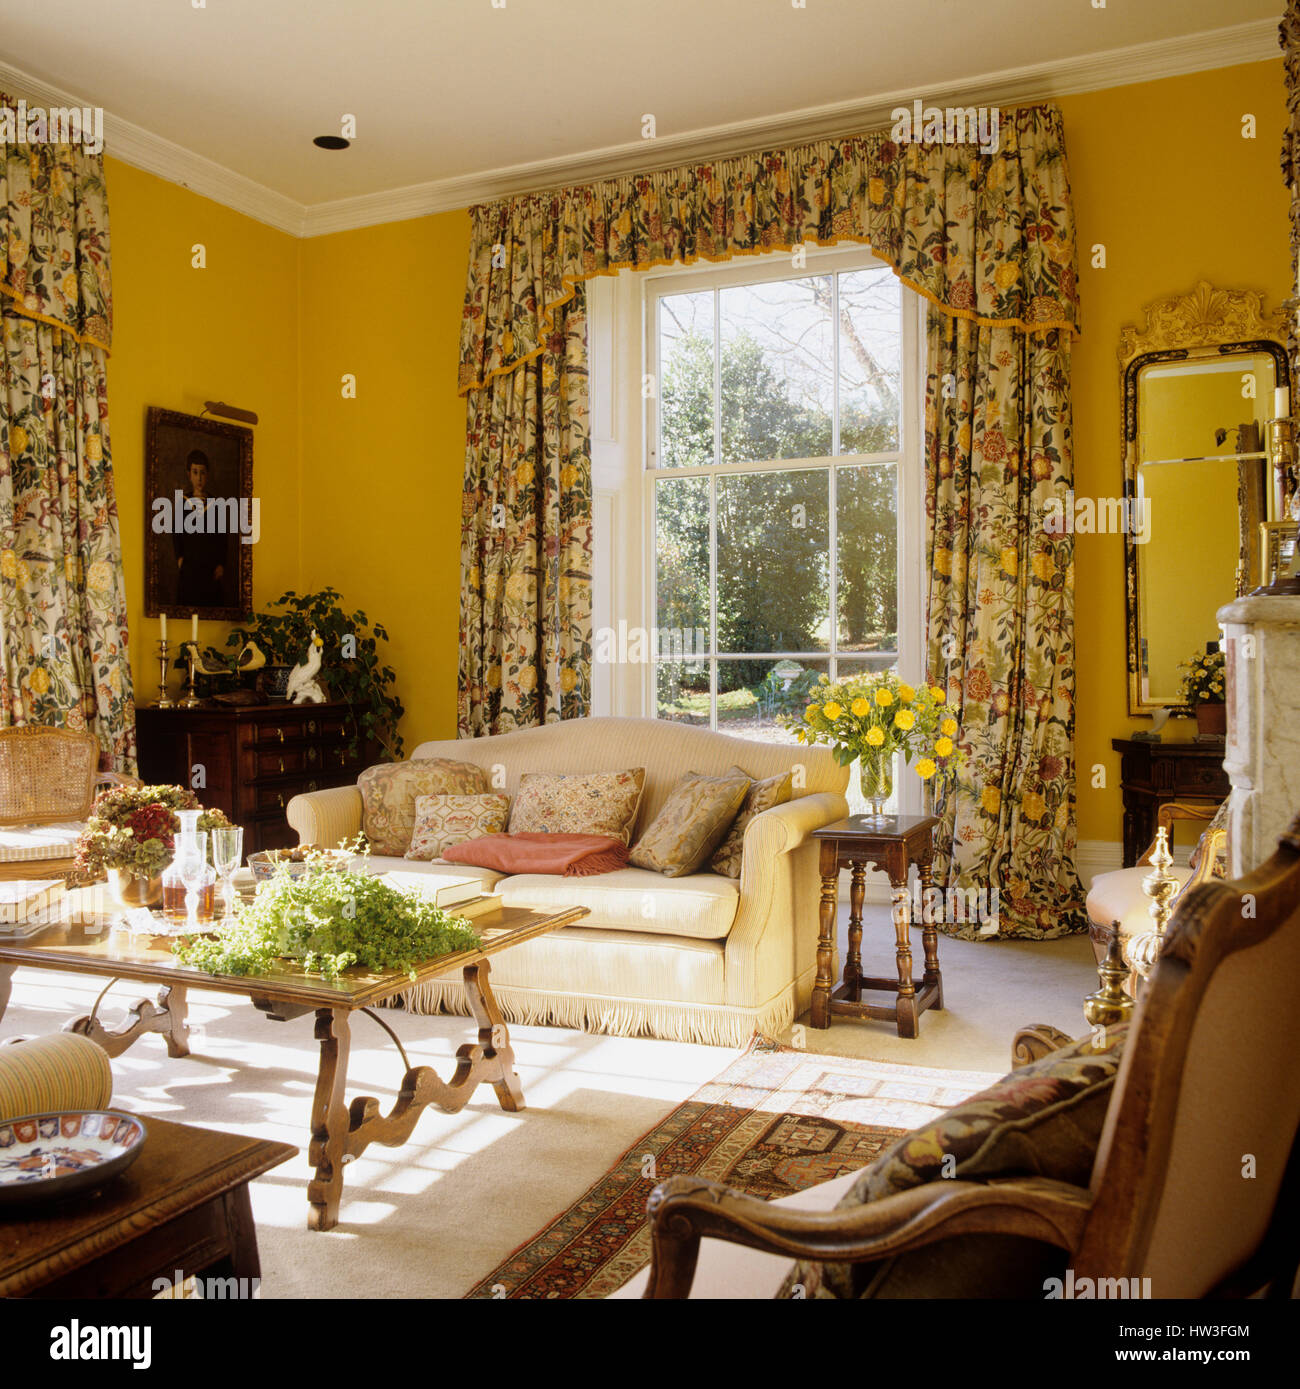 Living Room With Floral Patterned Curtains.